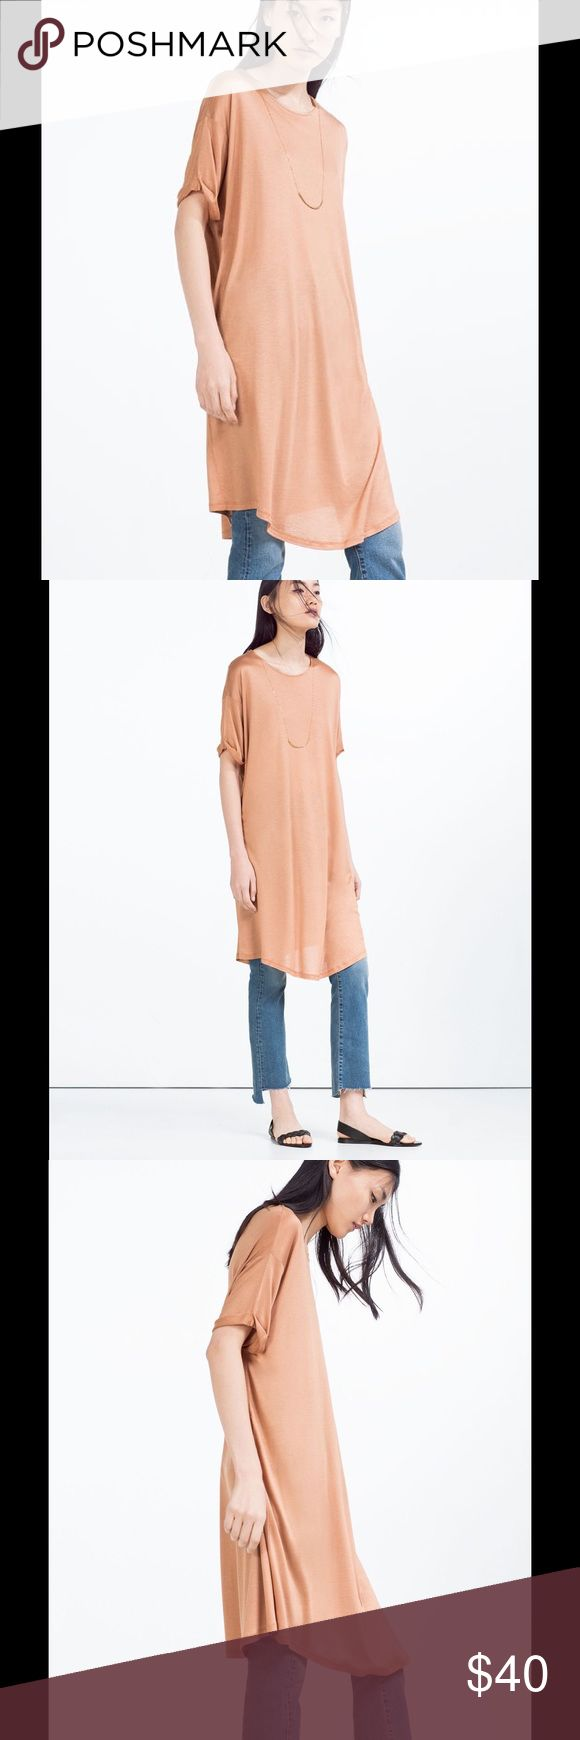 Zara Woman Blush Nude Long T-Shirt With Necklace Absolutely beautiful casual dress. Can be worn alone, with leggings, or jeans. Necklace is attached to dress. Excellent condition! Zara Dresses